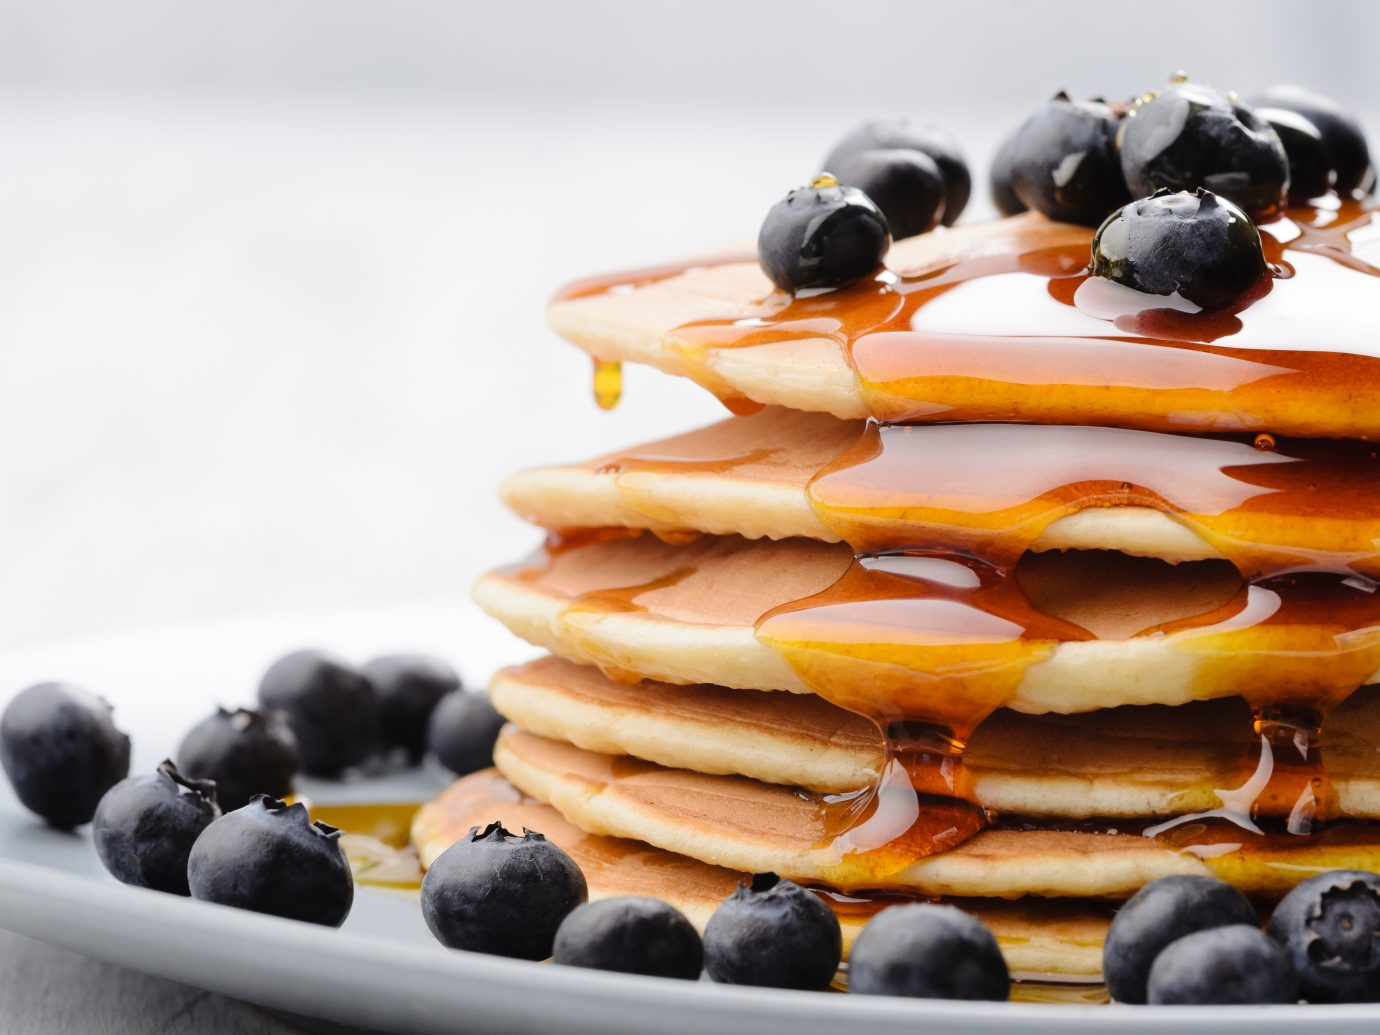 Plate of delicious pancakes close up, with fresh blueberries and maple syrup dripping